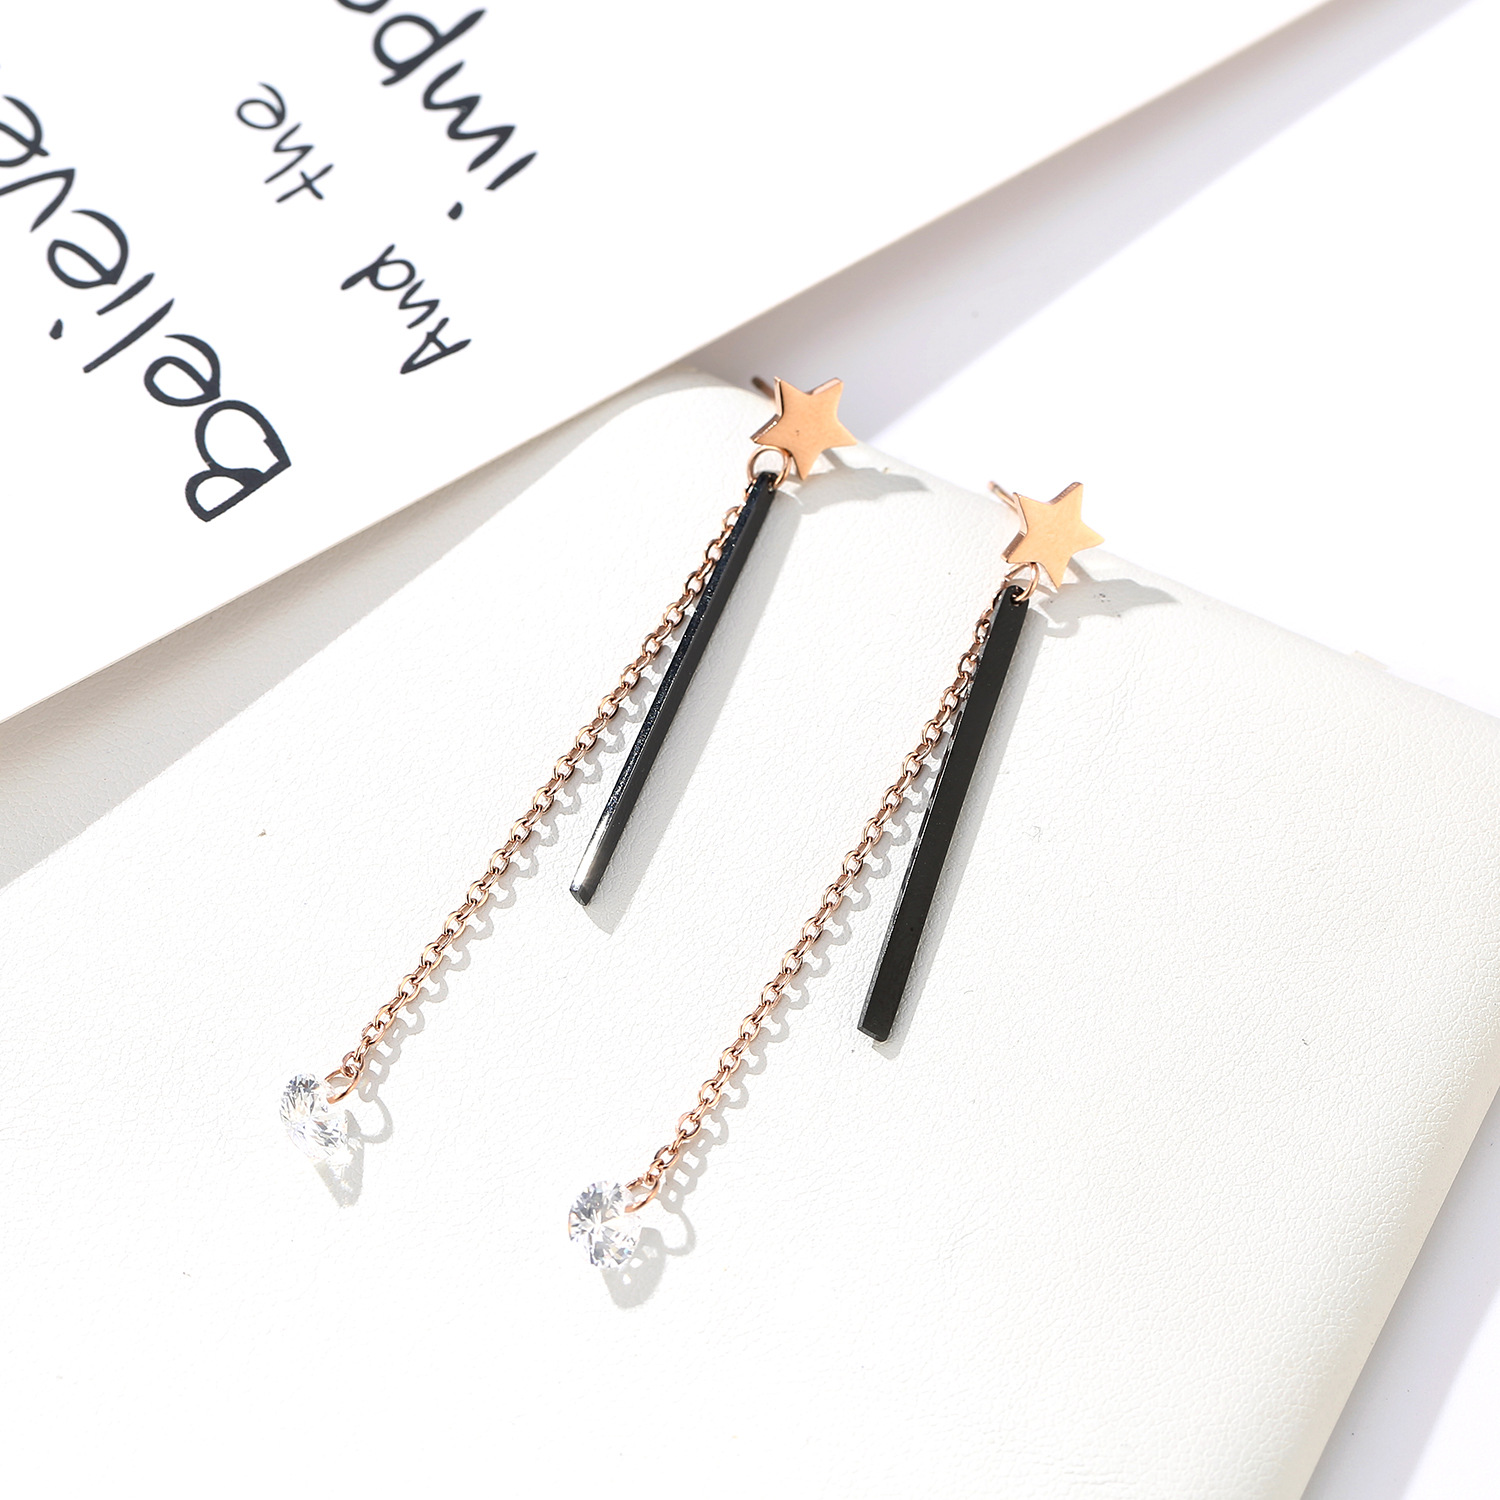 folk-custom metal plating Titanium steel earrings (Rose gold pair)NHIM0942-Rose gold pair